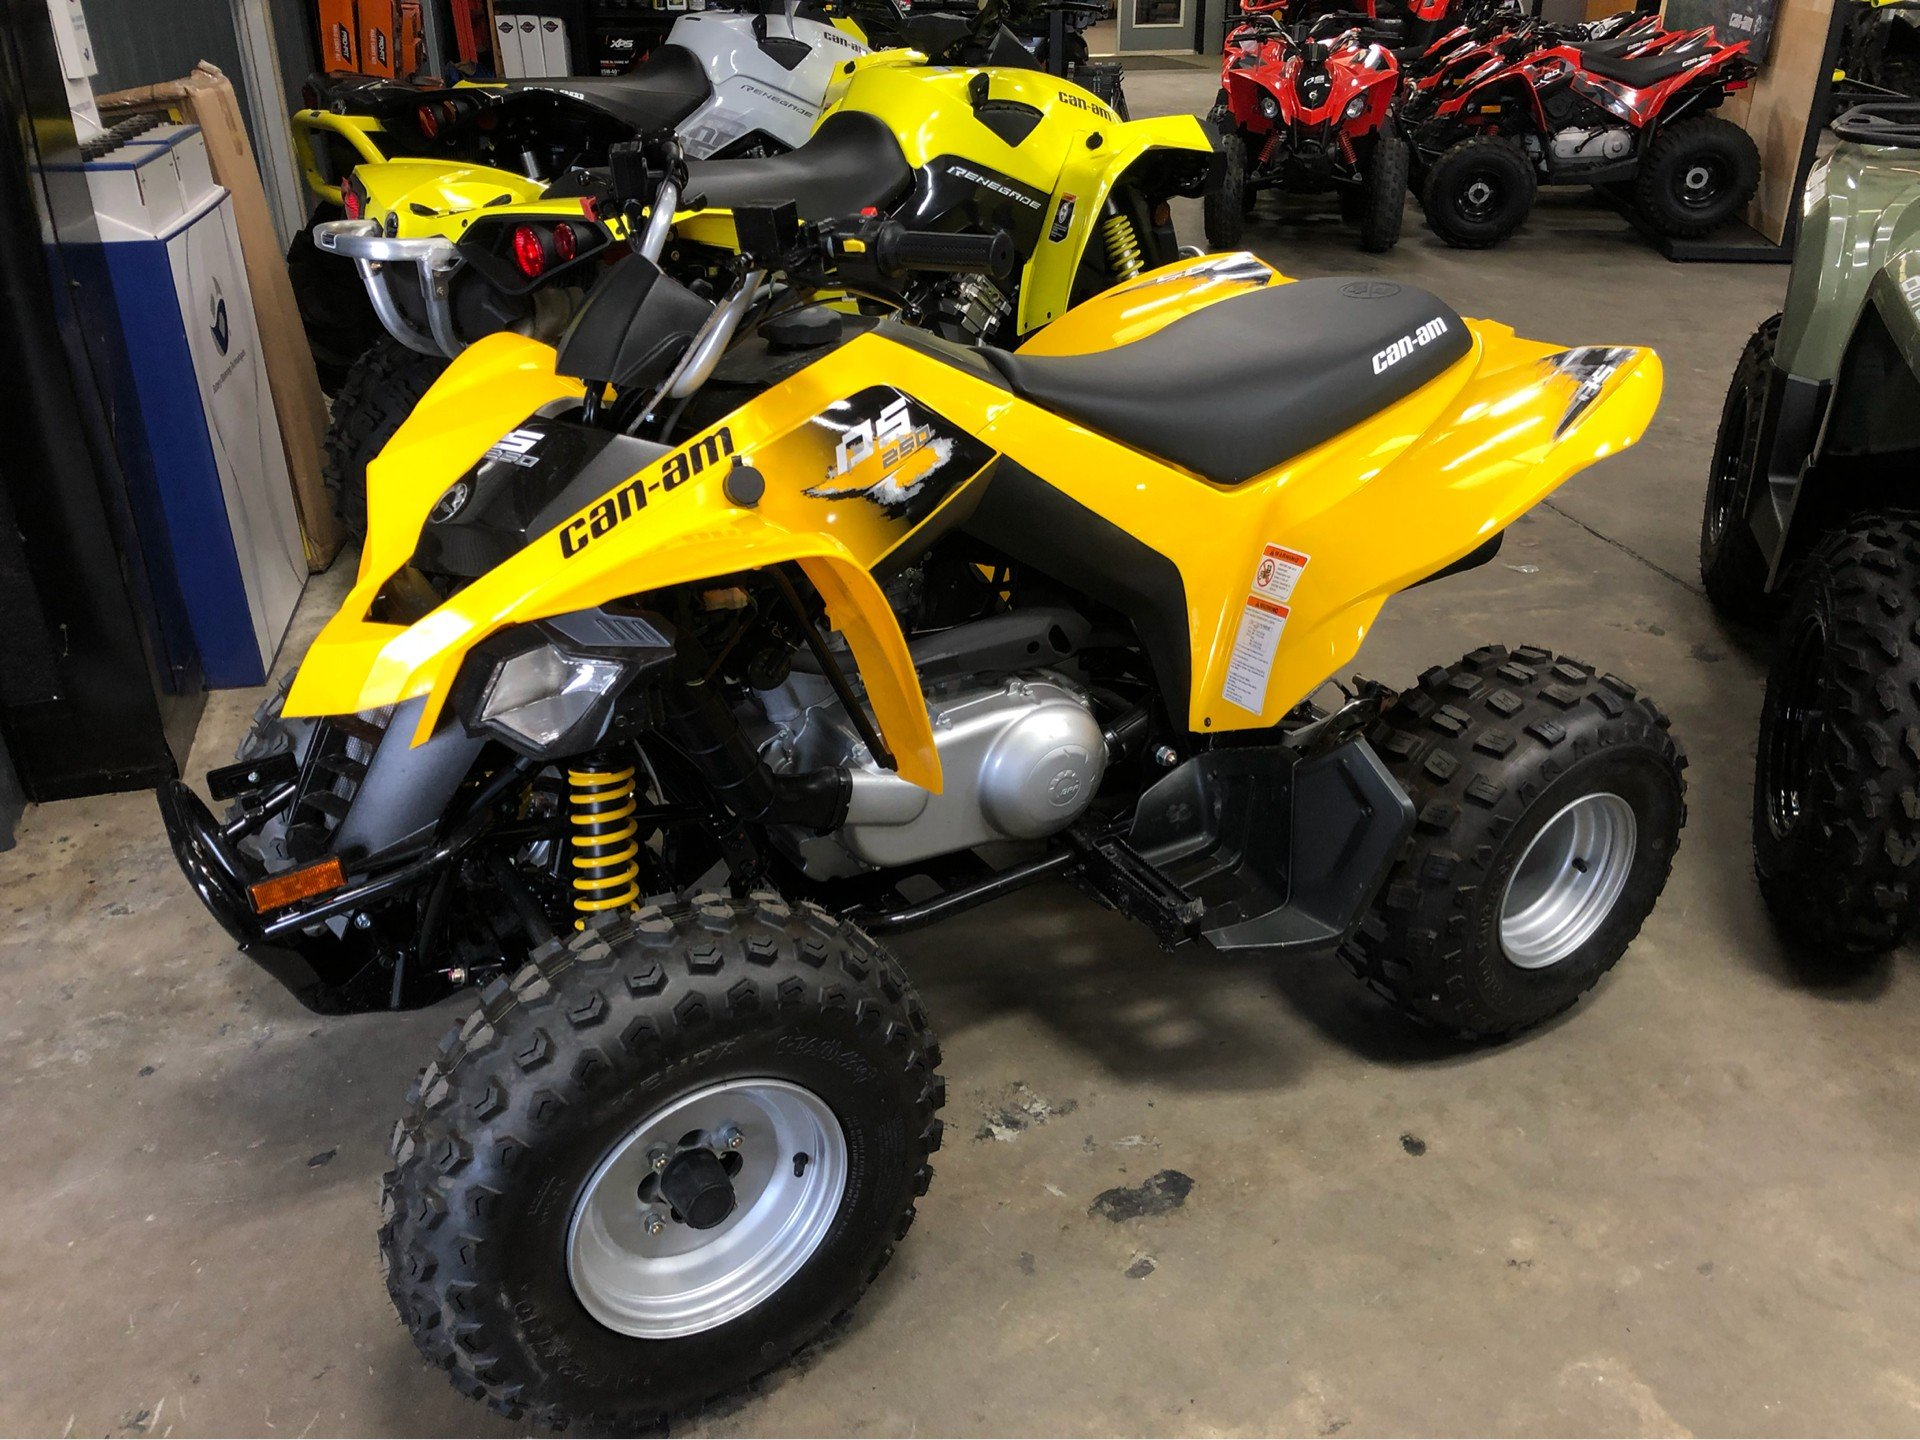 2019 Can-Am DS 250 in Douglas, Georgia - Photo 1